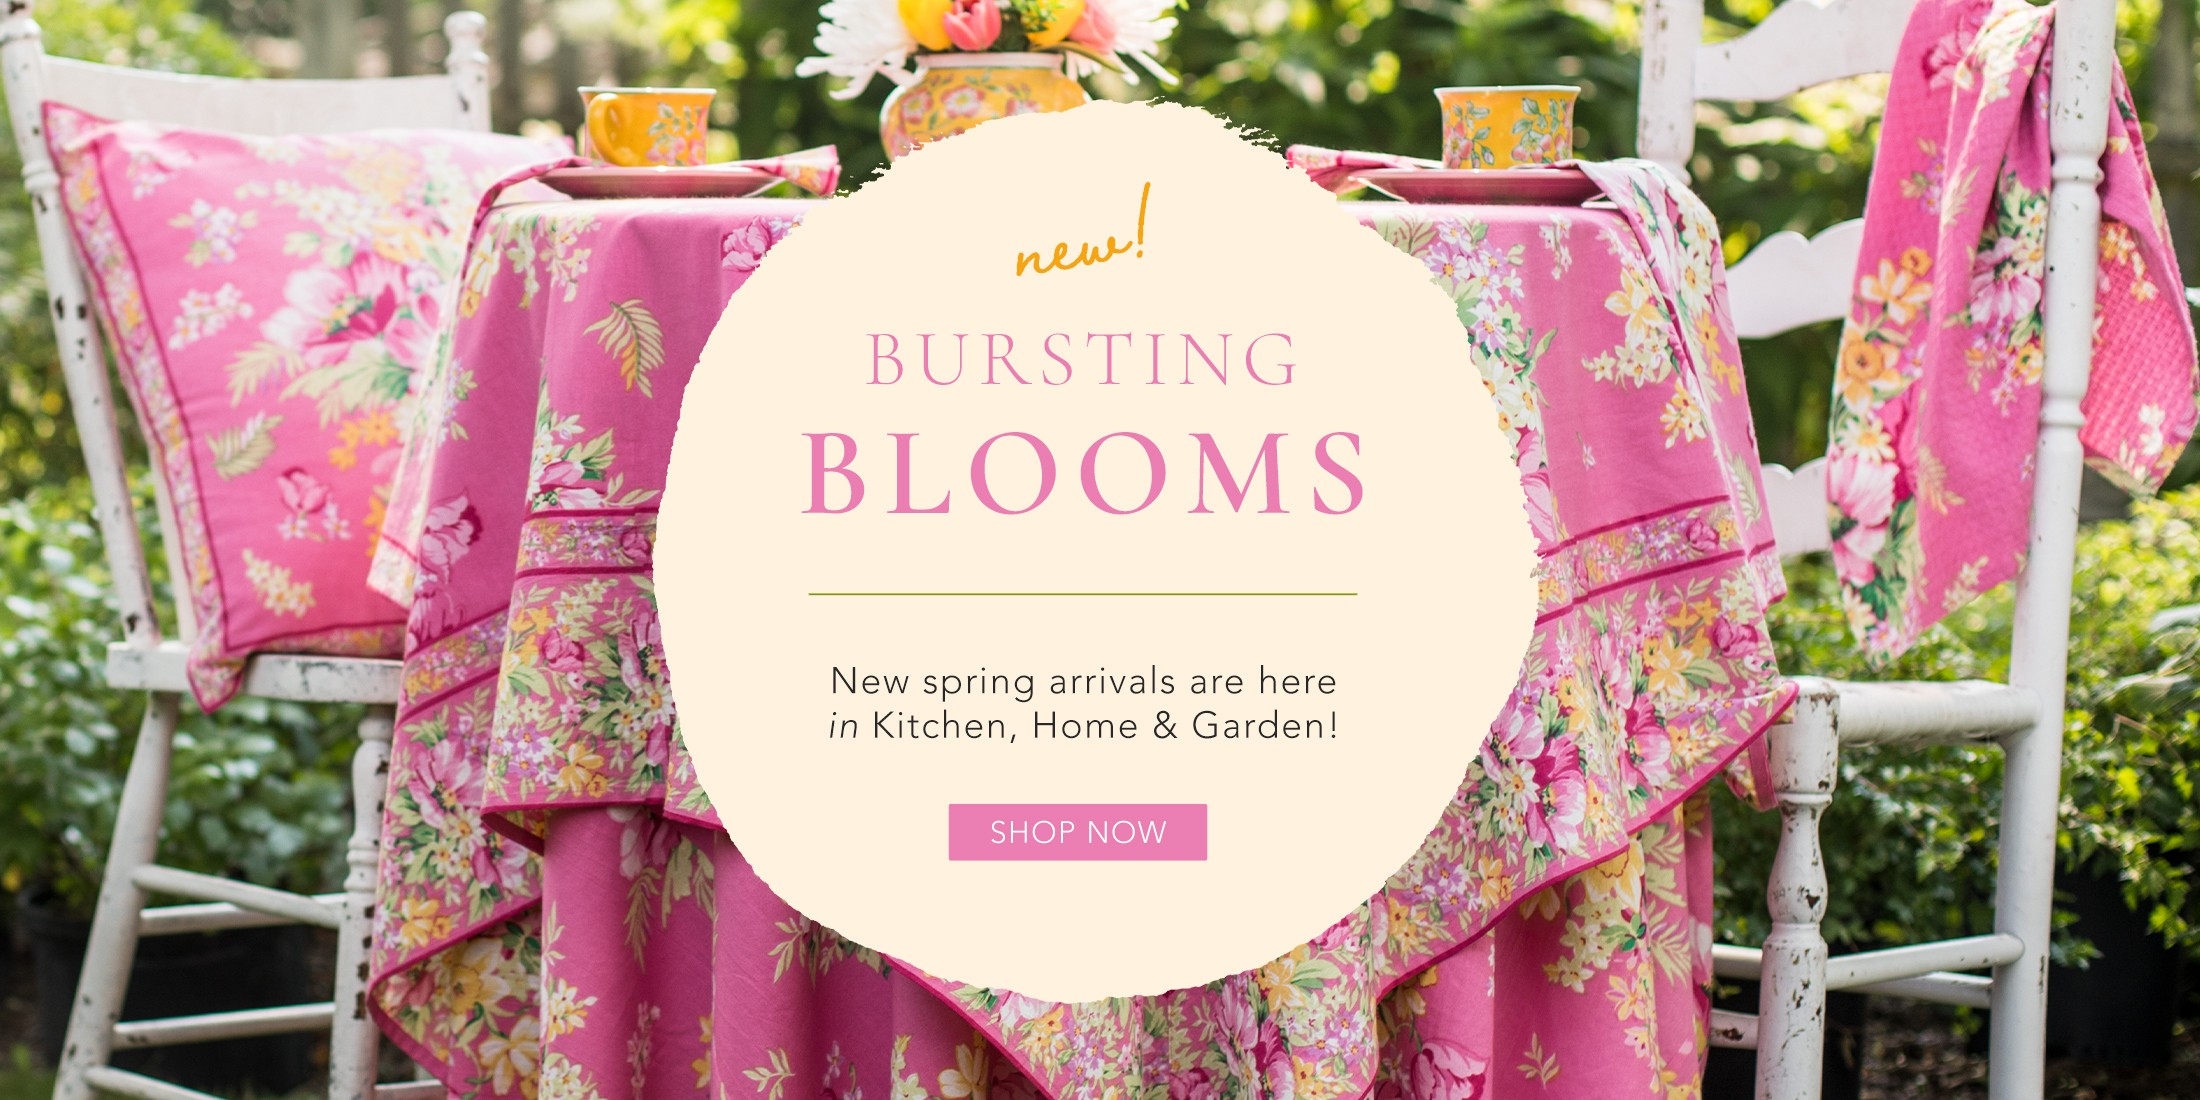 New spring arrivals are here in Kitchen, Home and Garden.